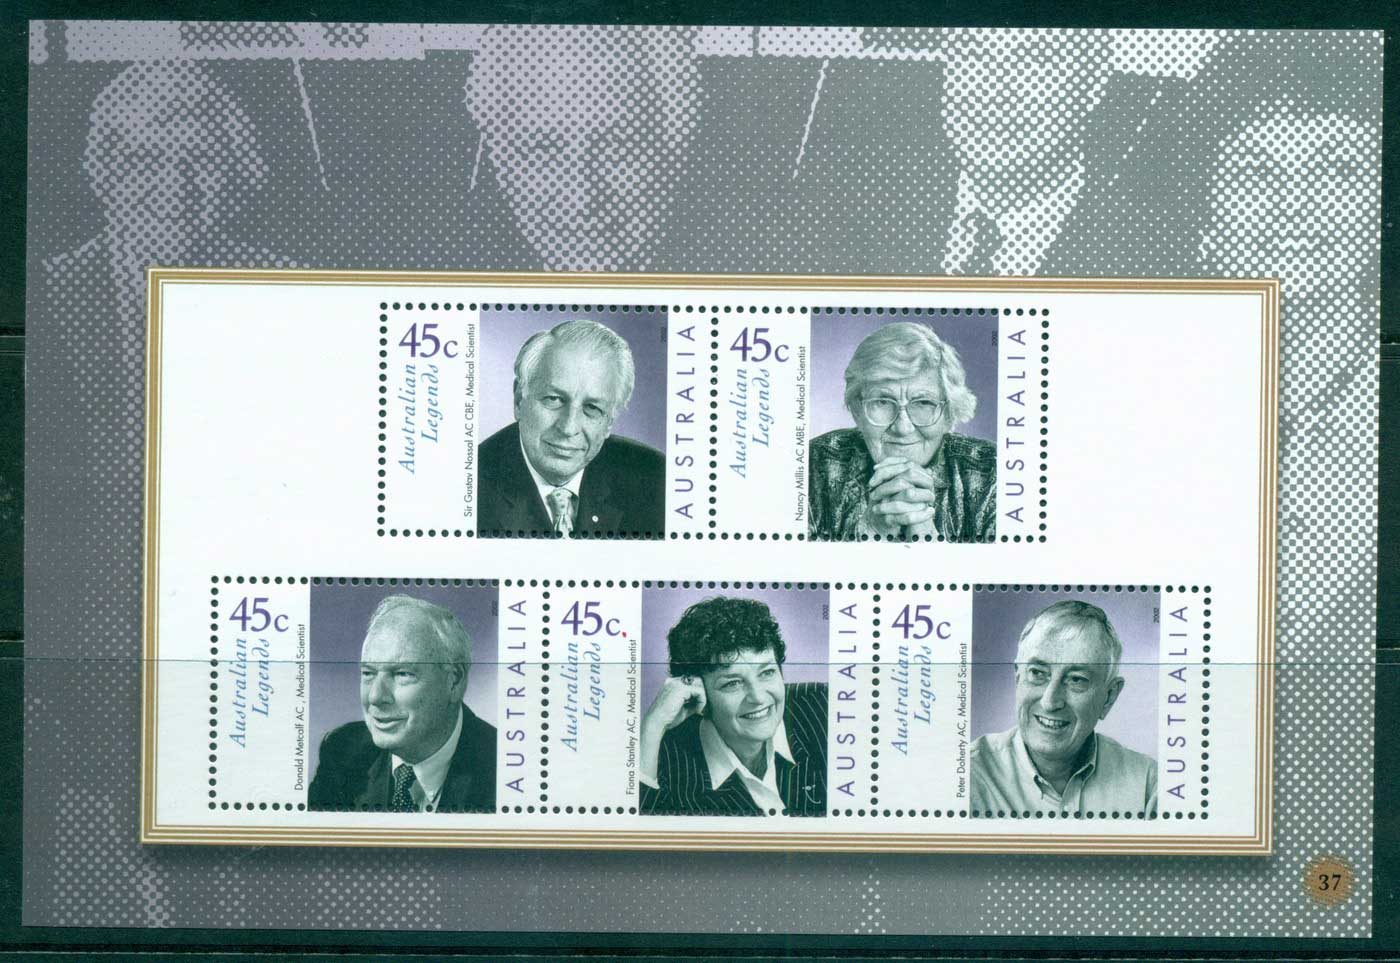 Australia 2010 #37 Australian Legends Medical Researchers Booklet pane MUH lot34642